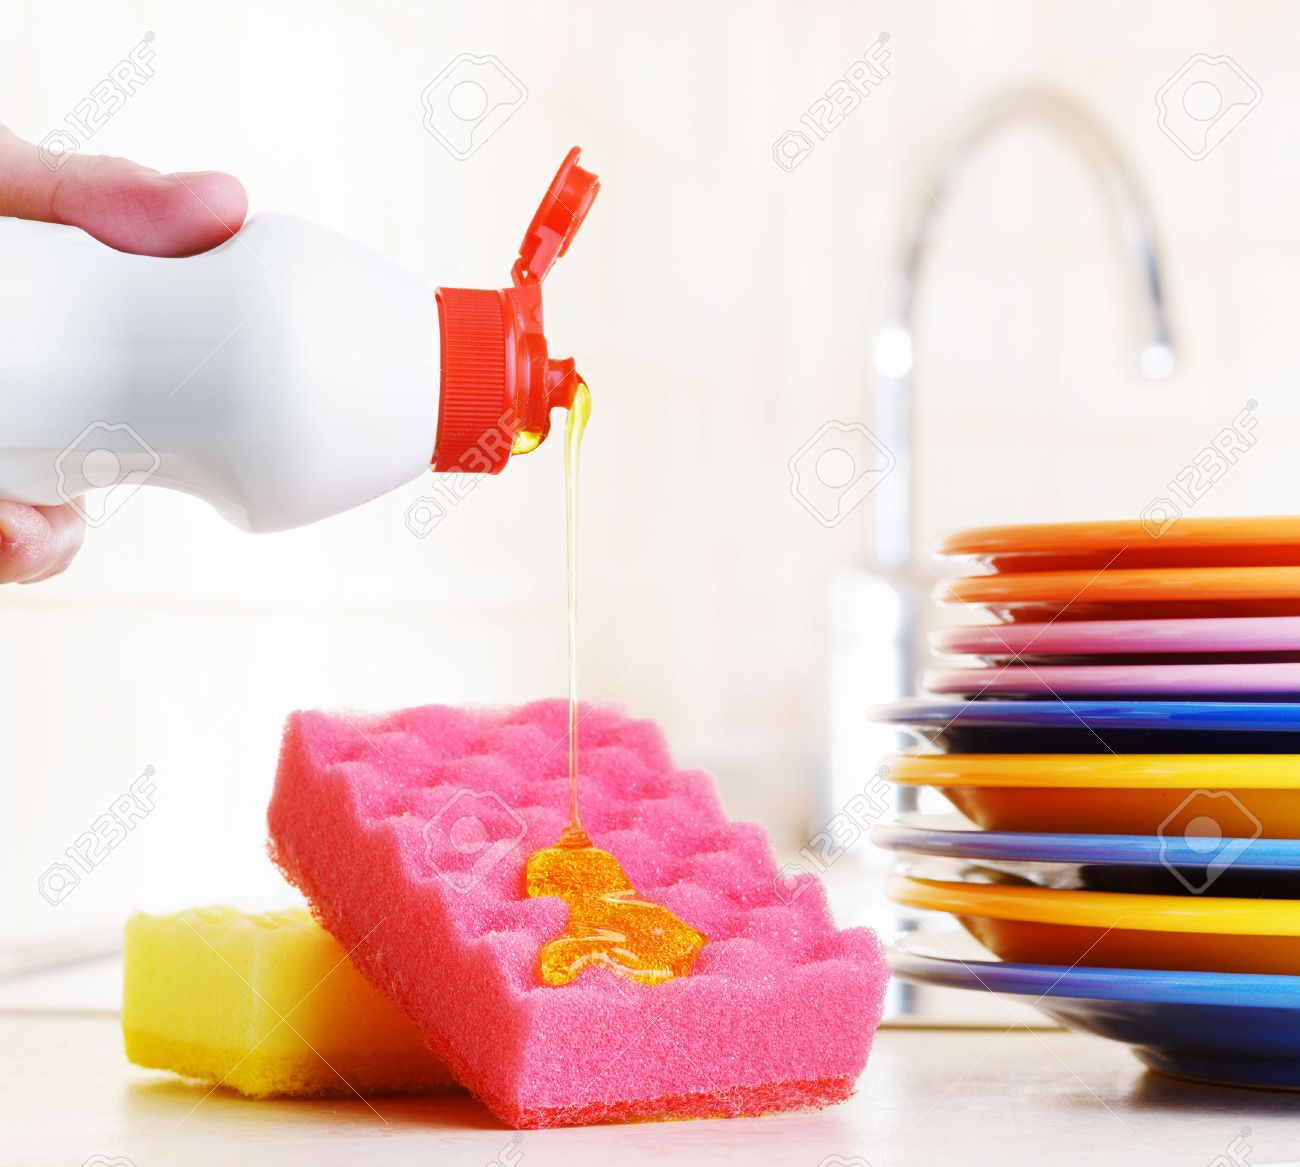 Several Colorful Plates, A Kitchen Sponges And A Plastic Bottle ...